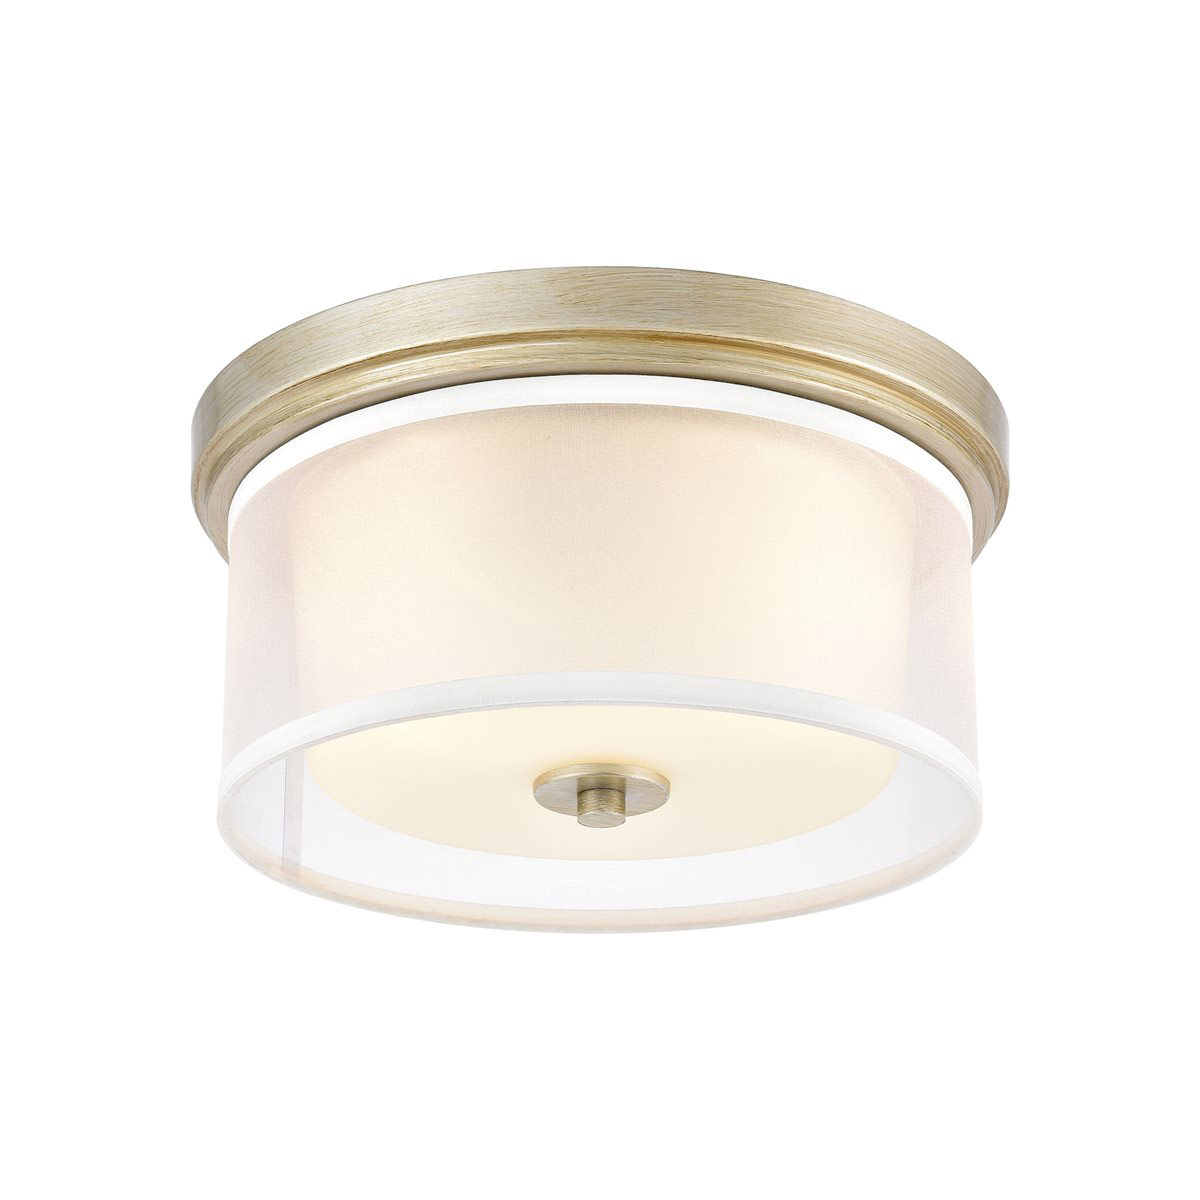 Diffusion Ceiling Light Fixture By Elk Lighting 57035 2